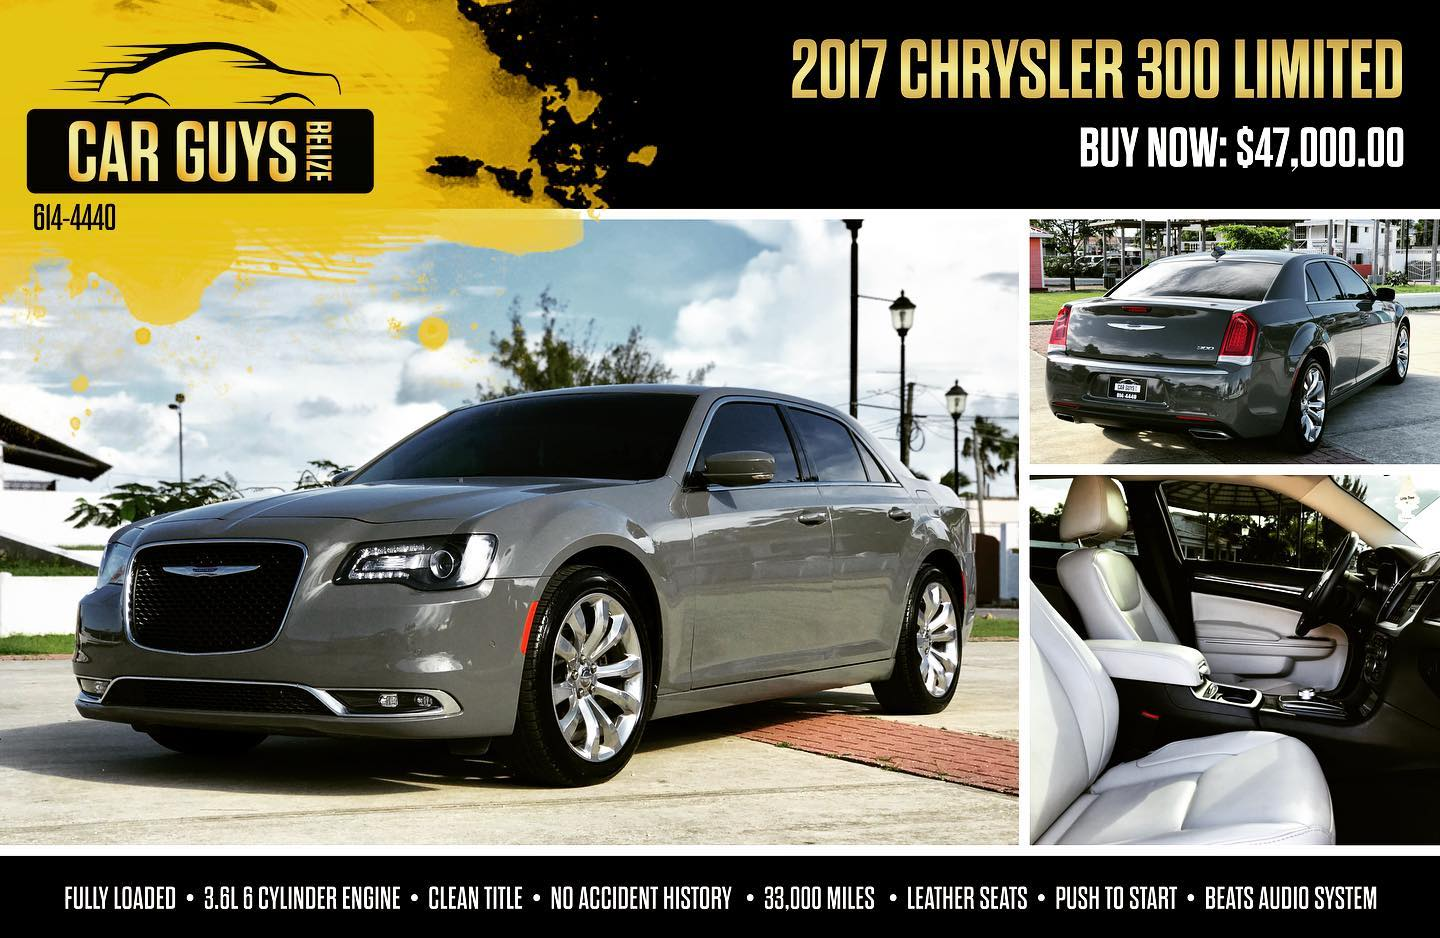 Mint condition! 2017 Chrysler 300 Limited